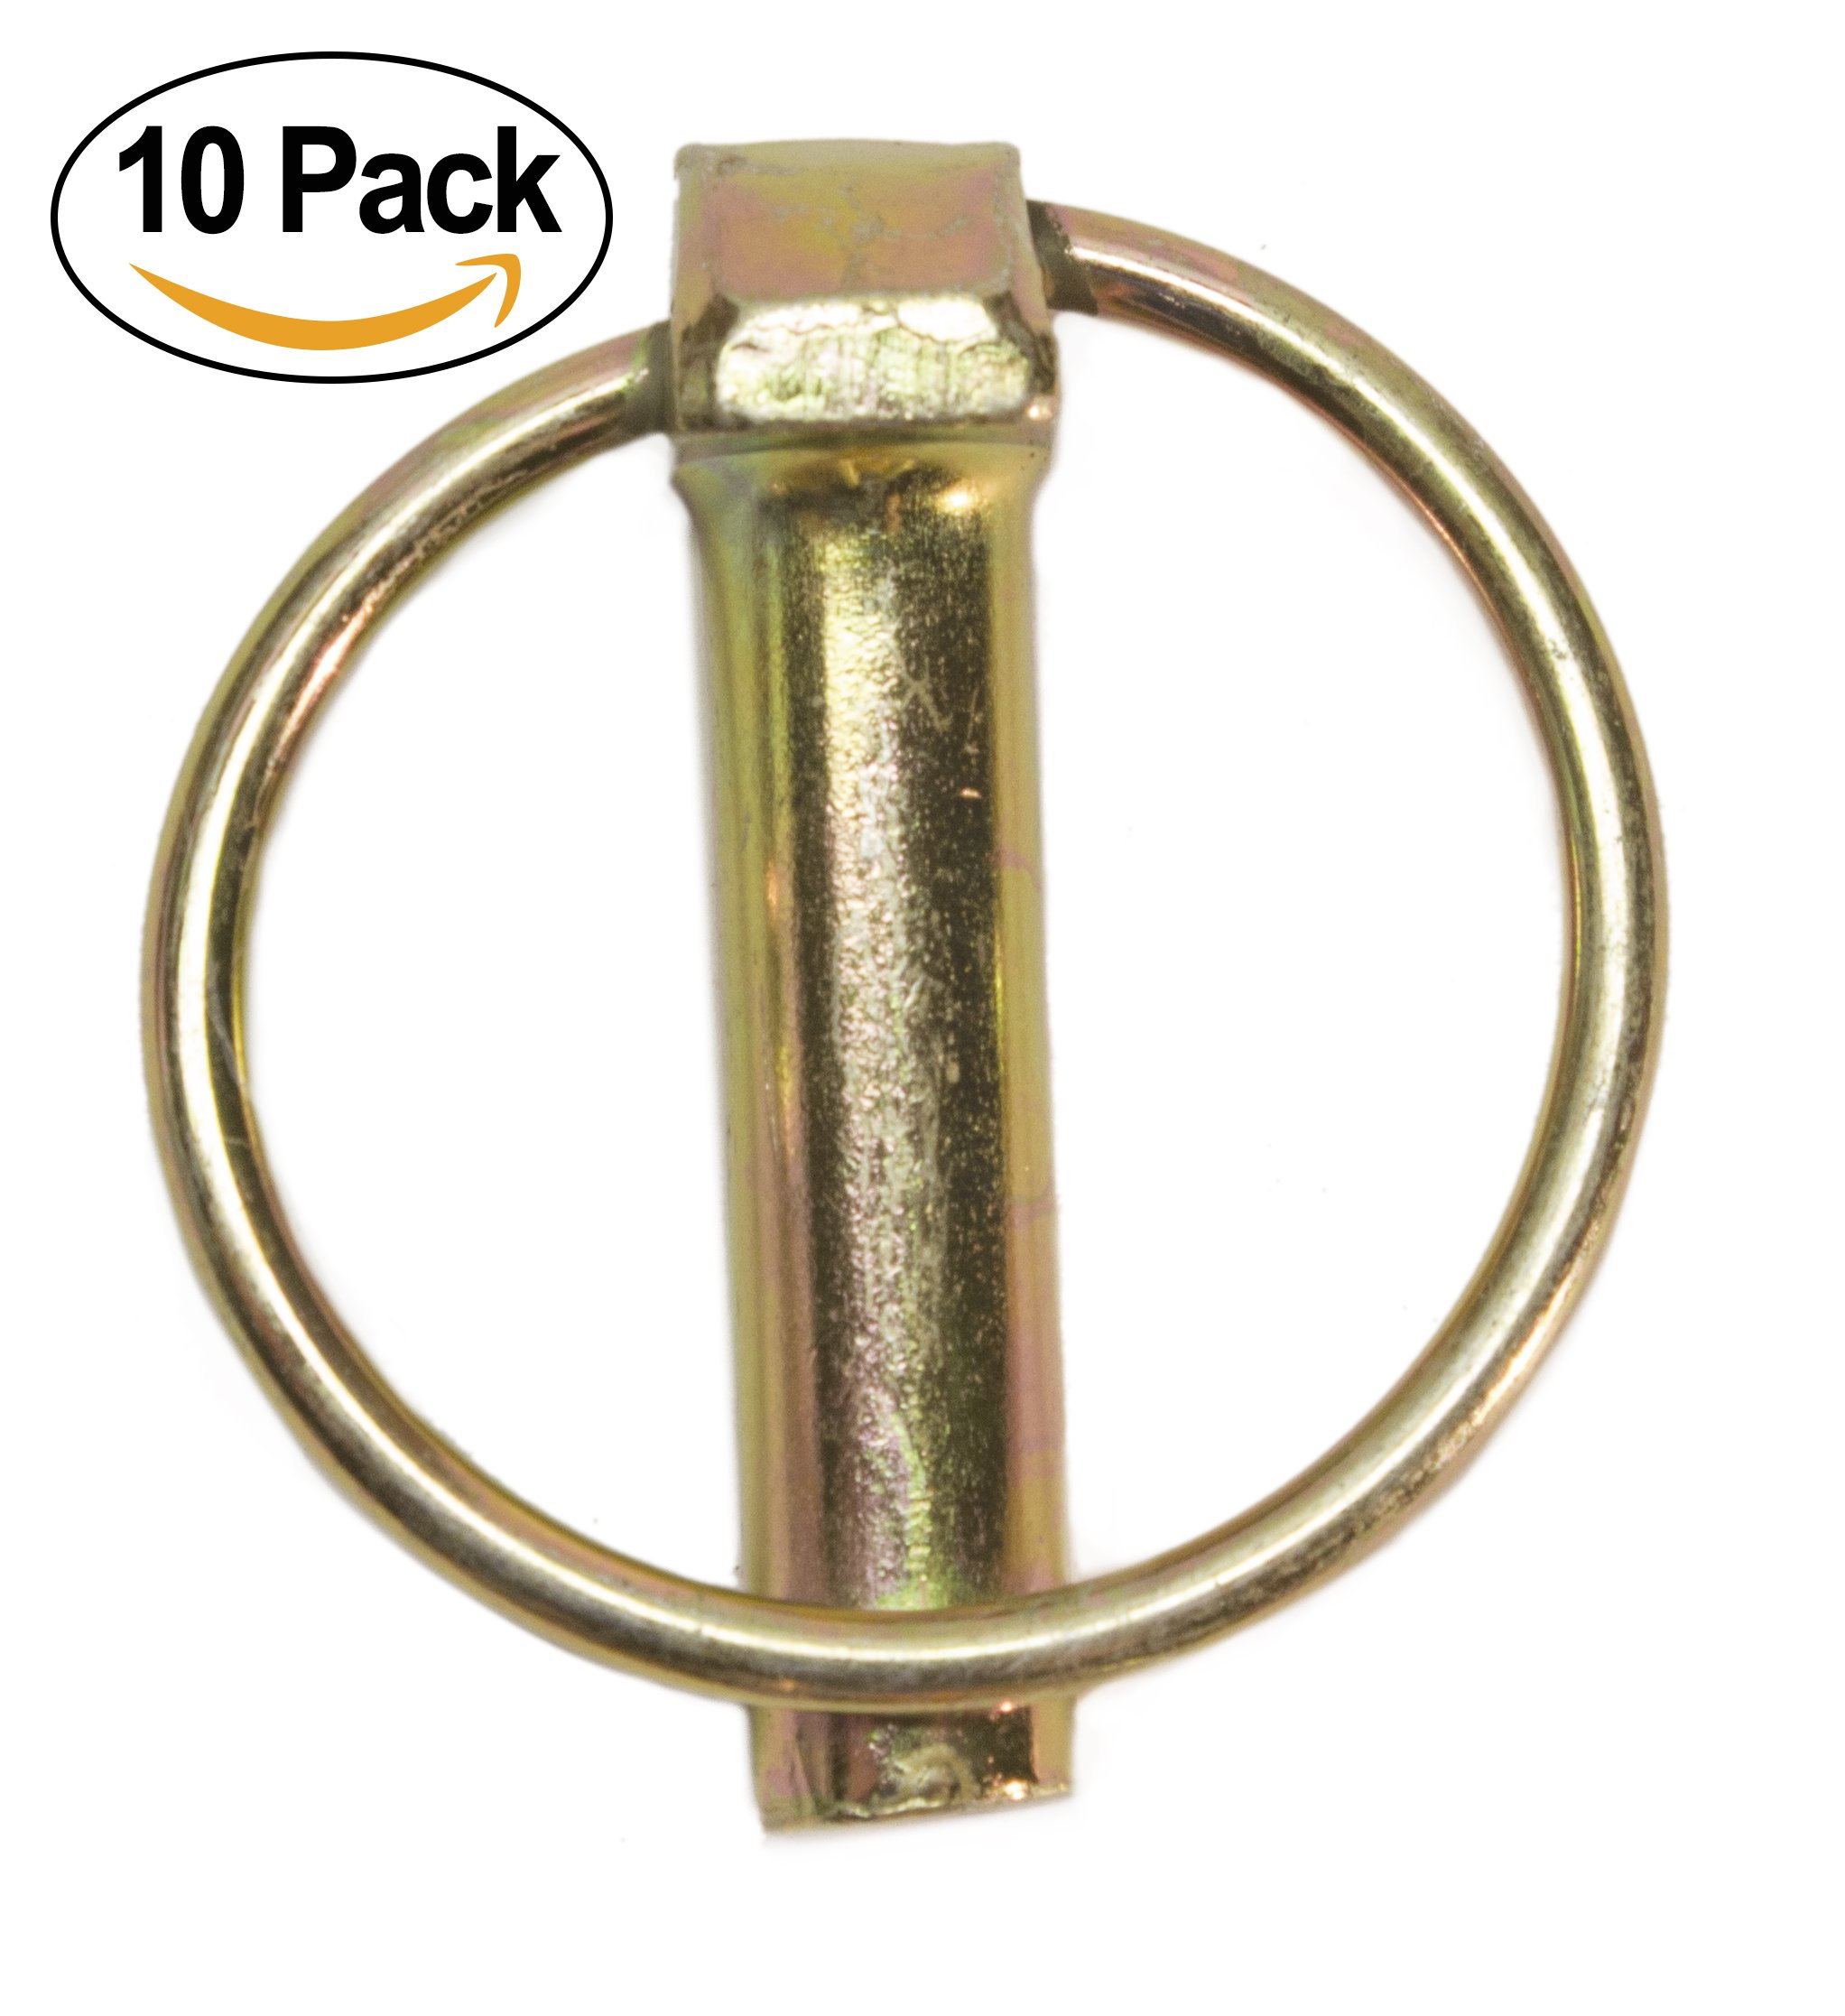 Linch Pin with Ring 7/16'' x 1-3/4 Inch (Pack of 10)